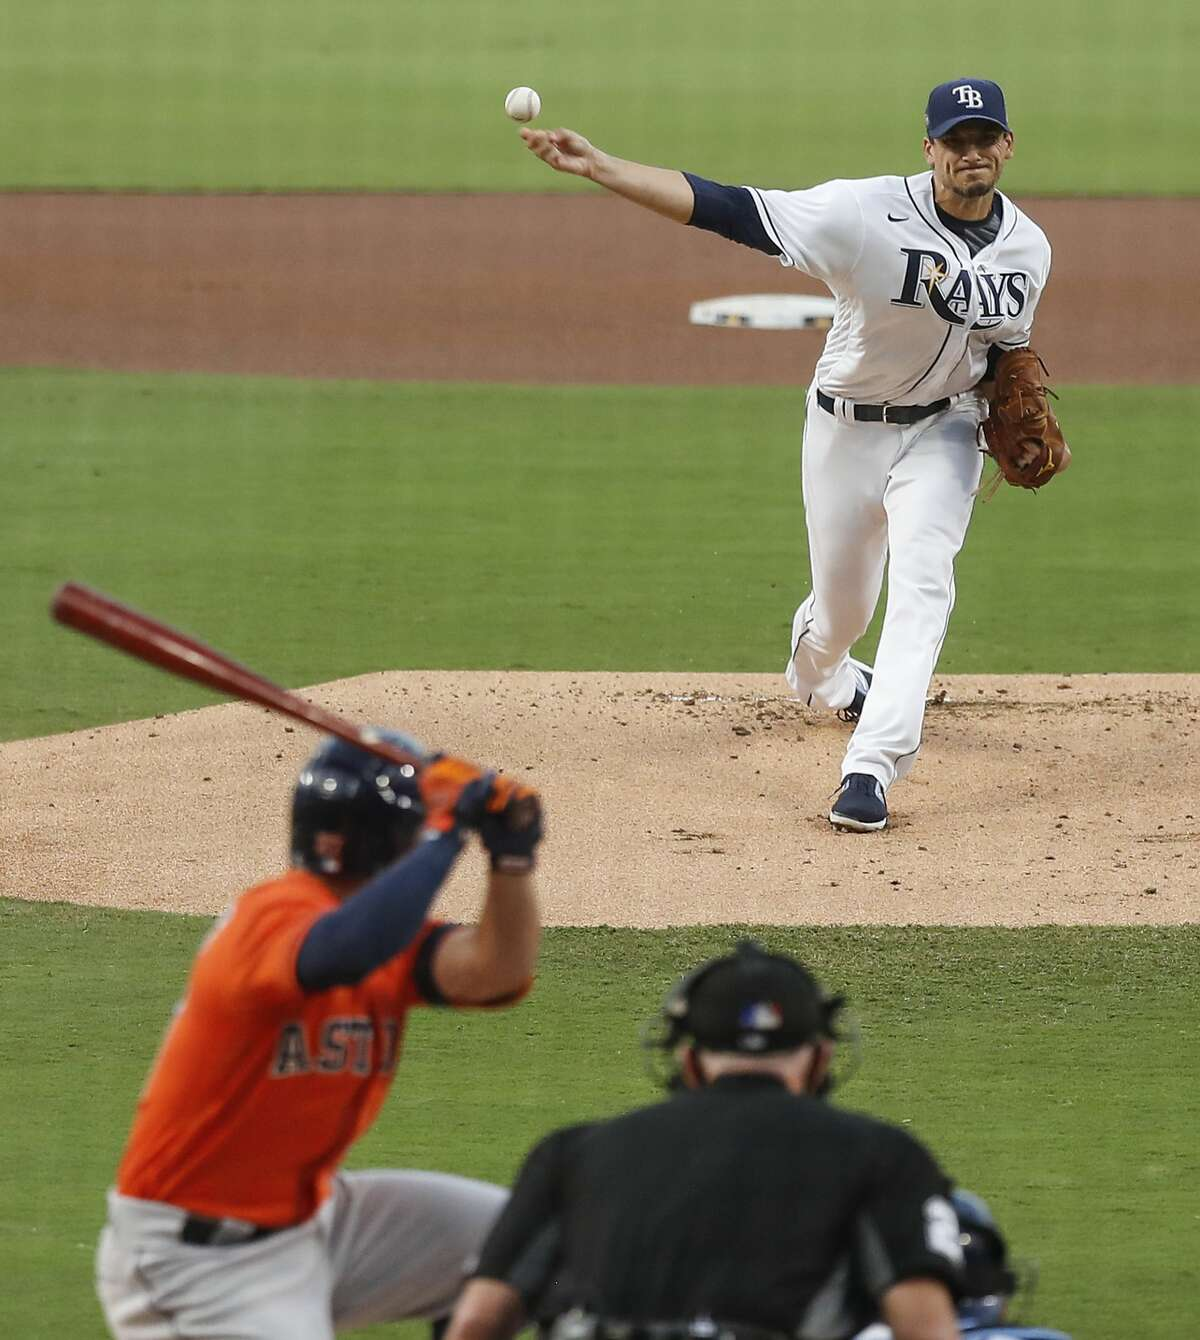 Tampa Bay Rays Charlie Morton pitches to Houston Astros Jose Altuve during the first inning of Game 7 of the American League Championship Series at Petco Park Saturday, Oct. 17, 2020, in San Diego.